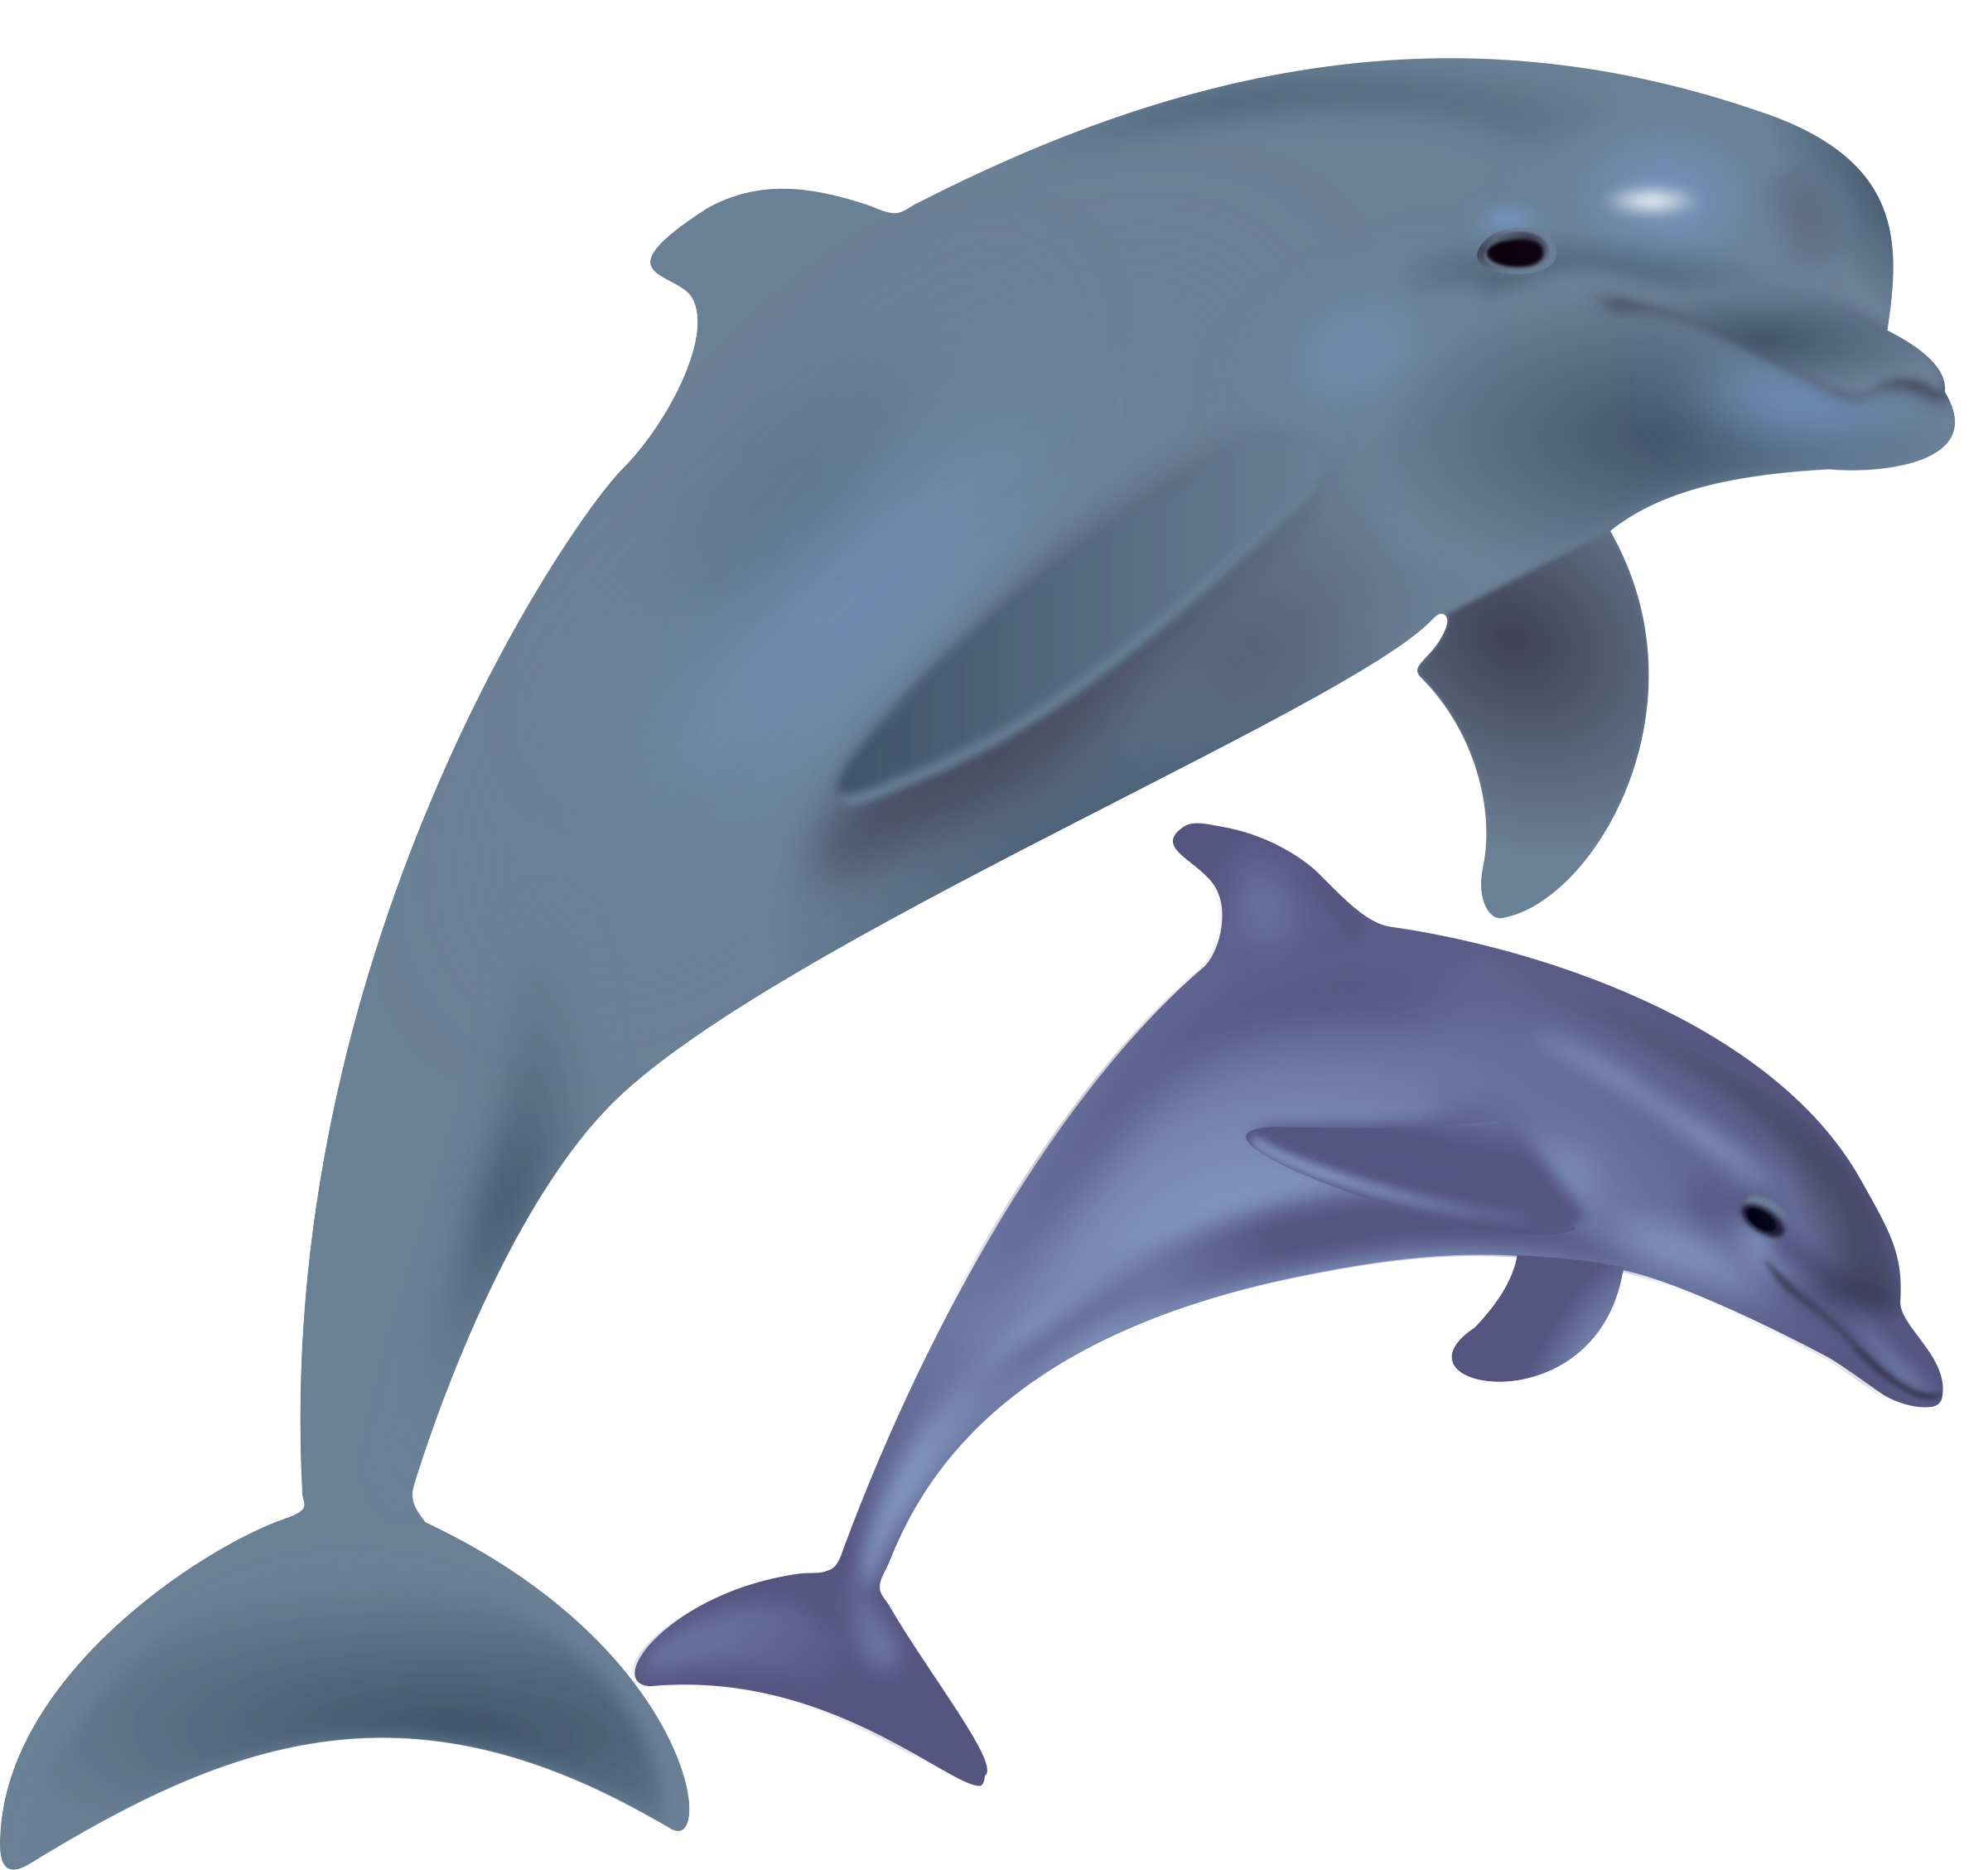 dolphins, delfinai, animals by Keistutis